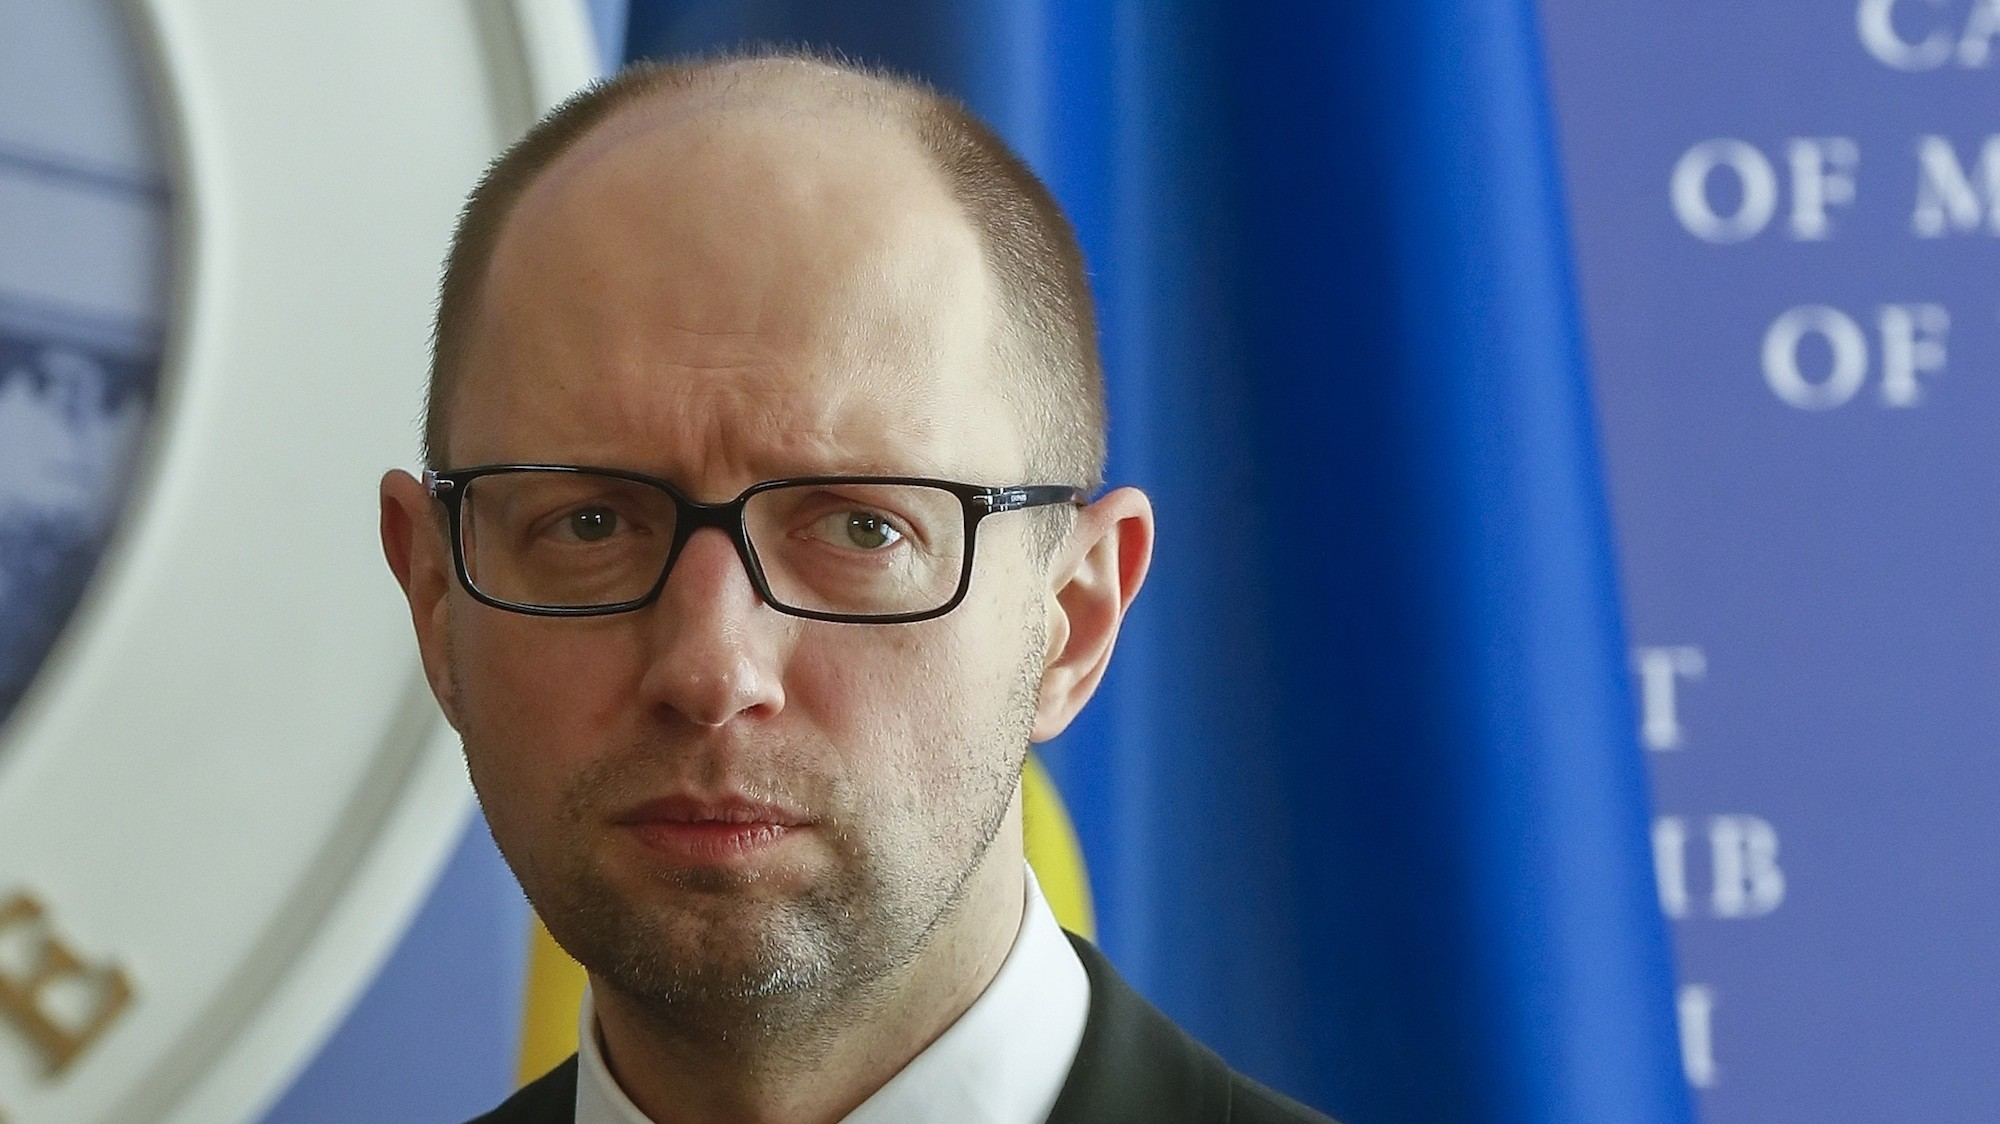 Ukraine's Prime Minister Offers Cryptic Reasons for Sudden Resignation